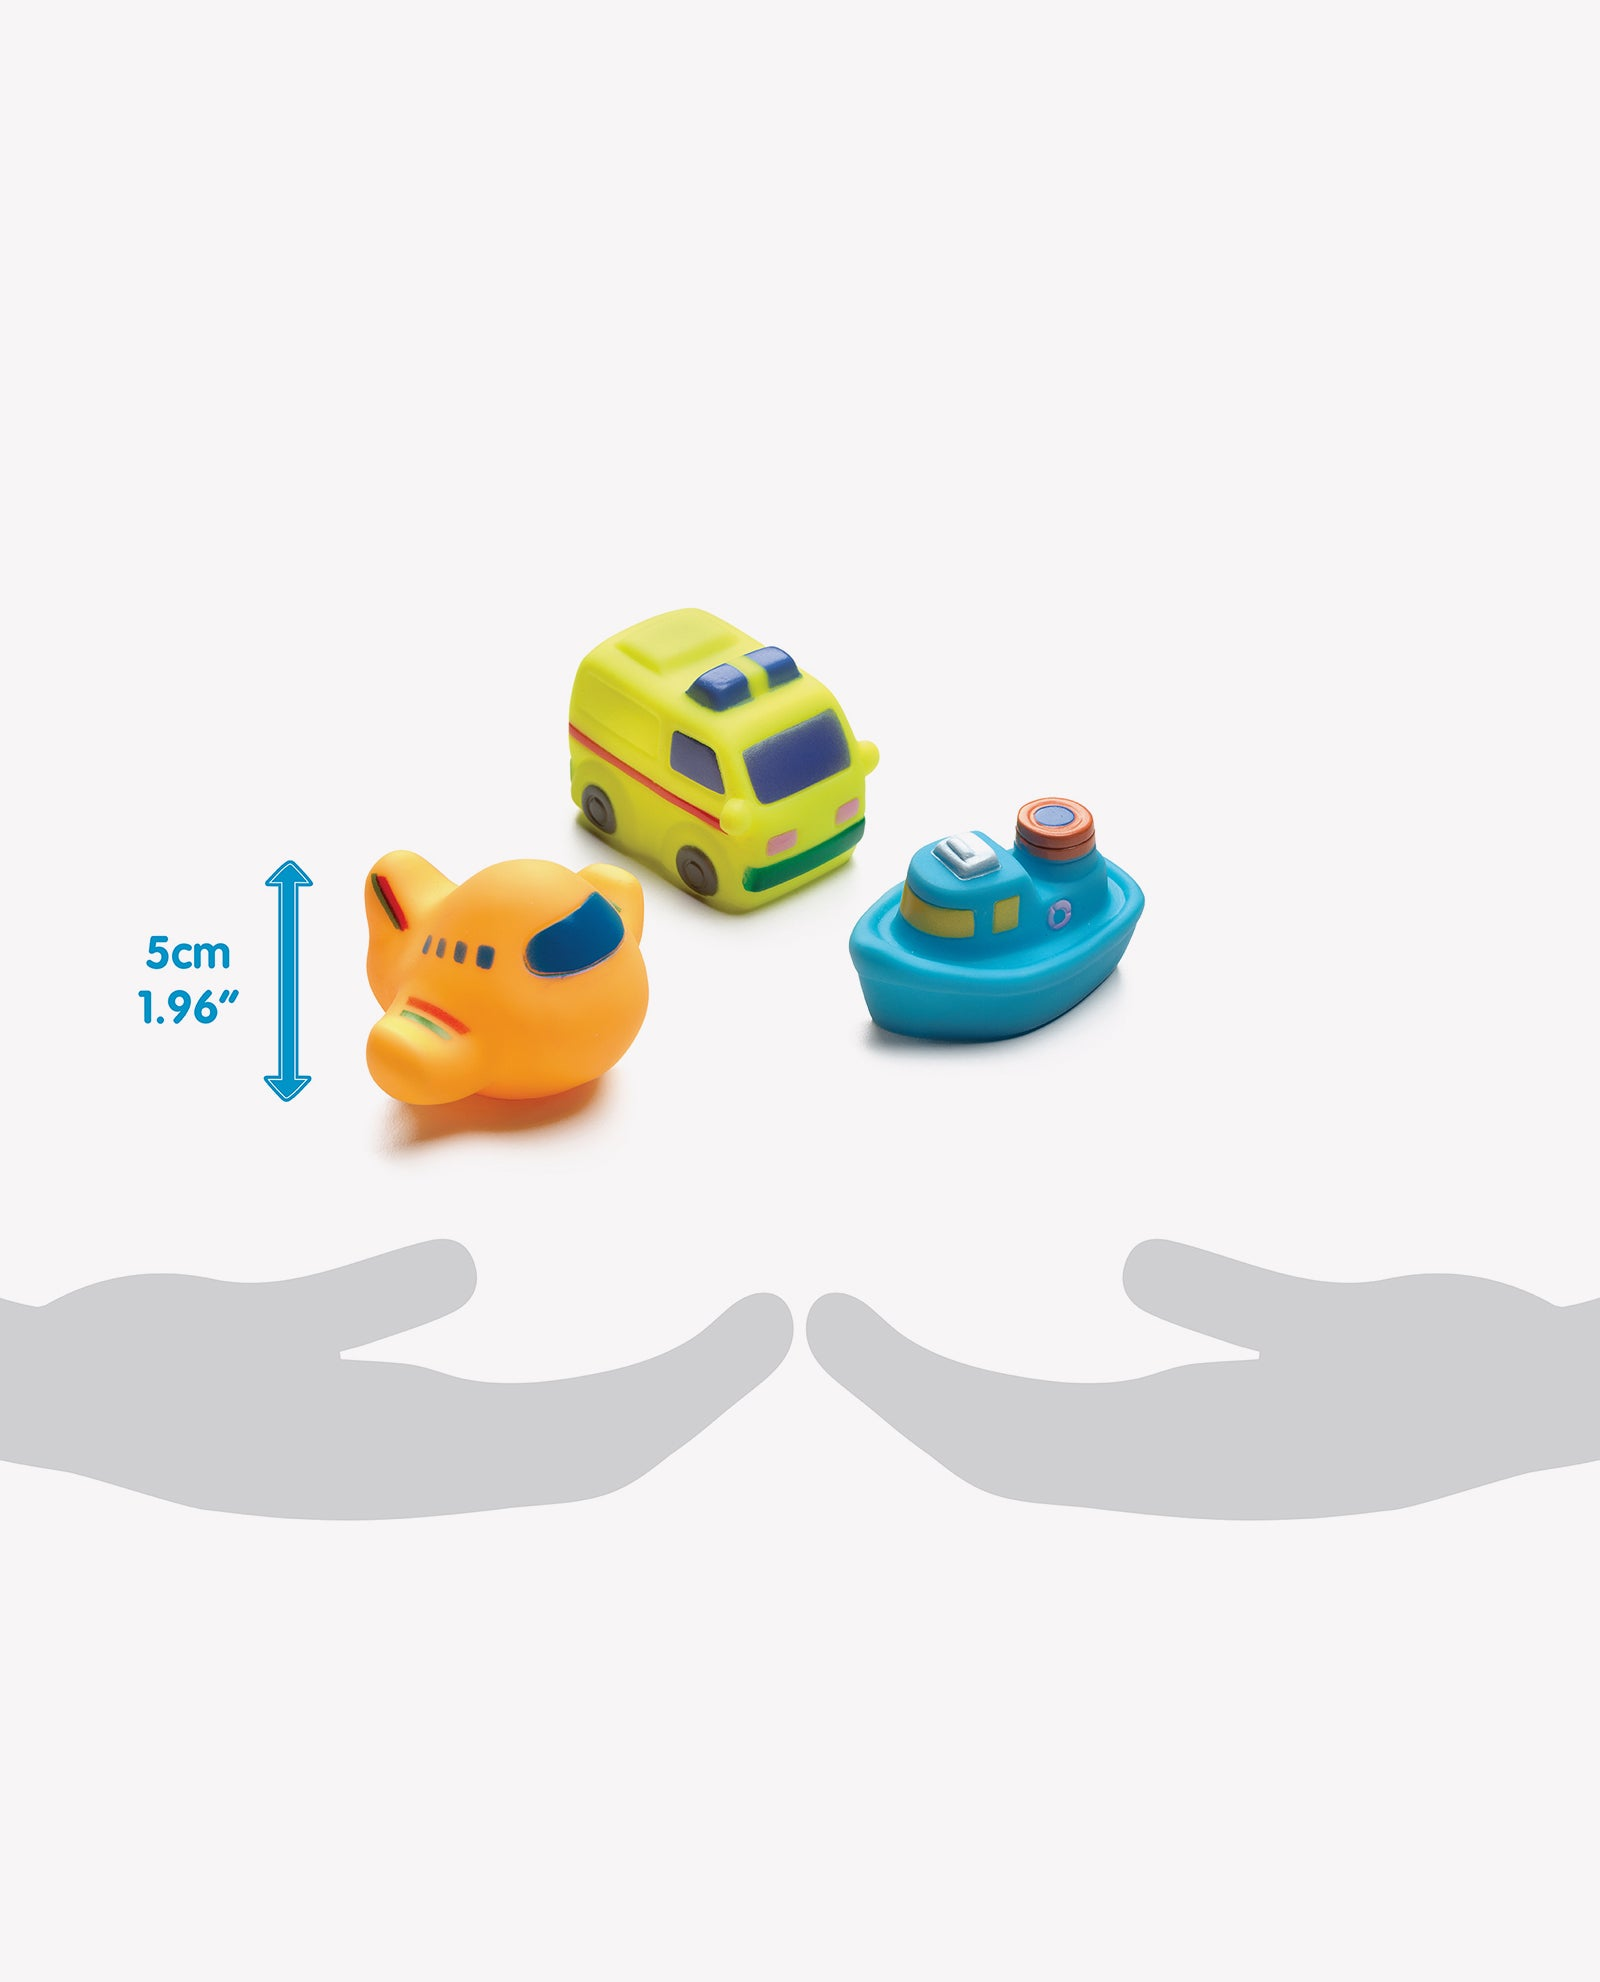 Playgro squirtees bath tub toy in the shape of plane, car and boat size comparison in relation to hand